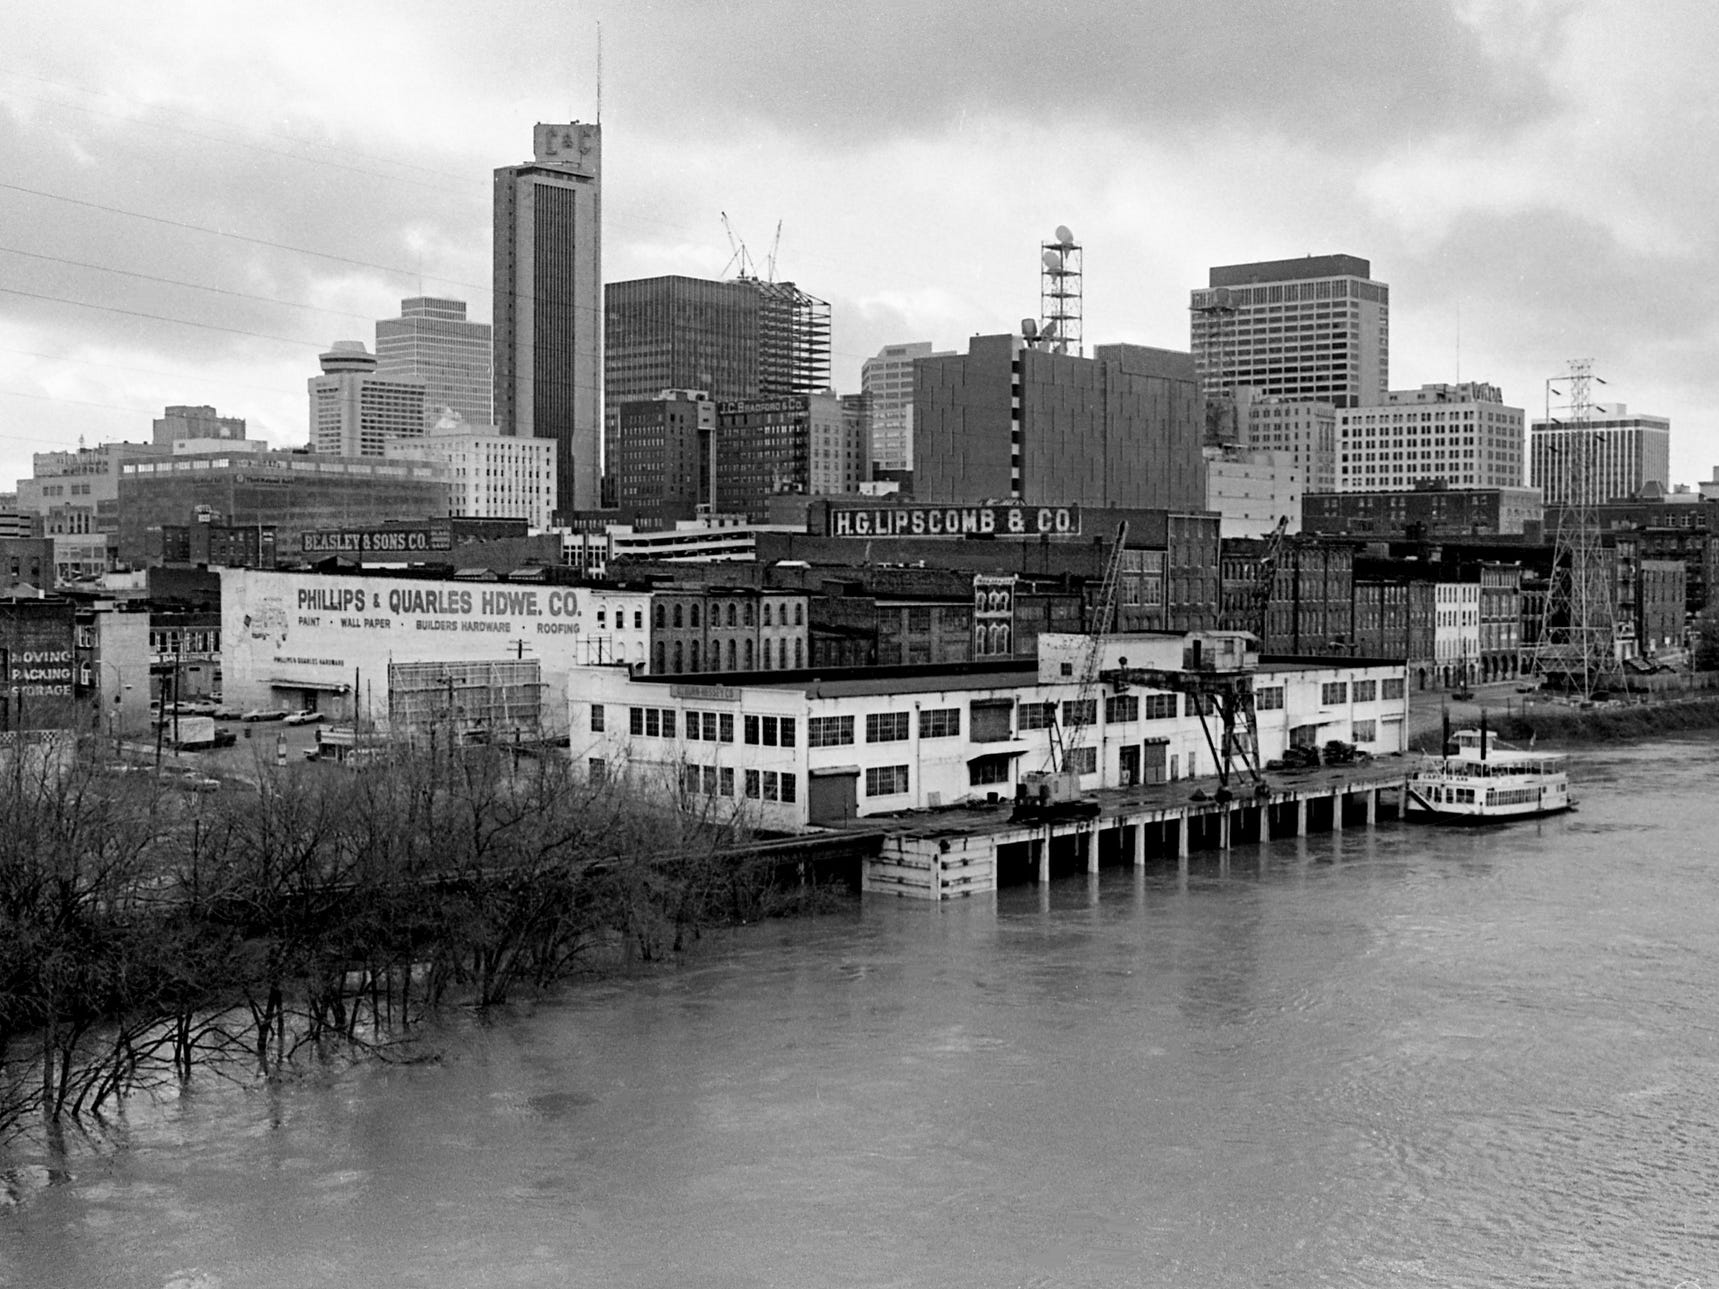 The floodwater-swollen Cumberland River, here Dec. 9, 1978, begins to recede long before it reaches a height that would threaten downtown Nashville and East Nashville near the river. A total of 4 inches of rain fell in a day and half, bring the total for the month to 10 inches.